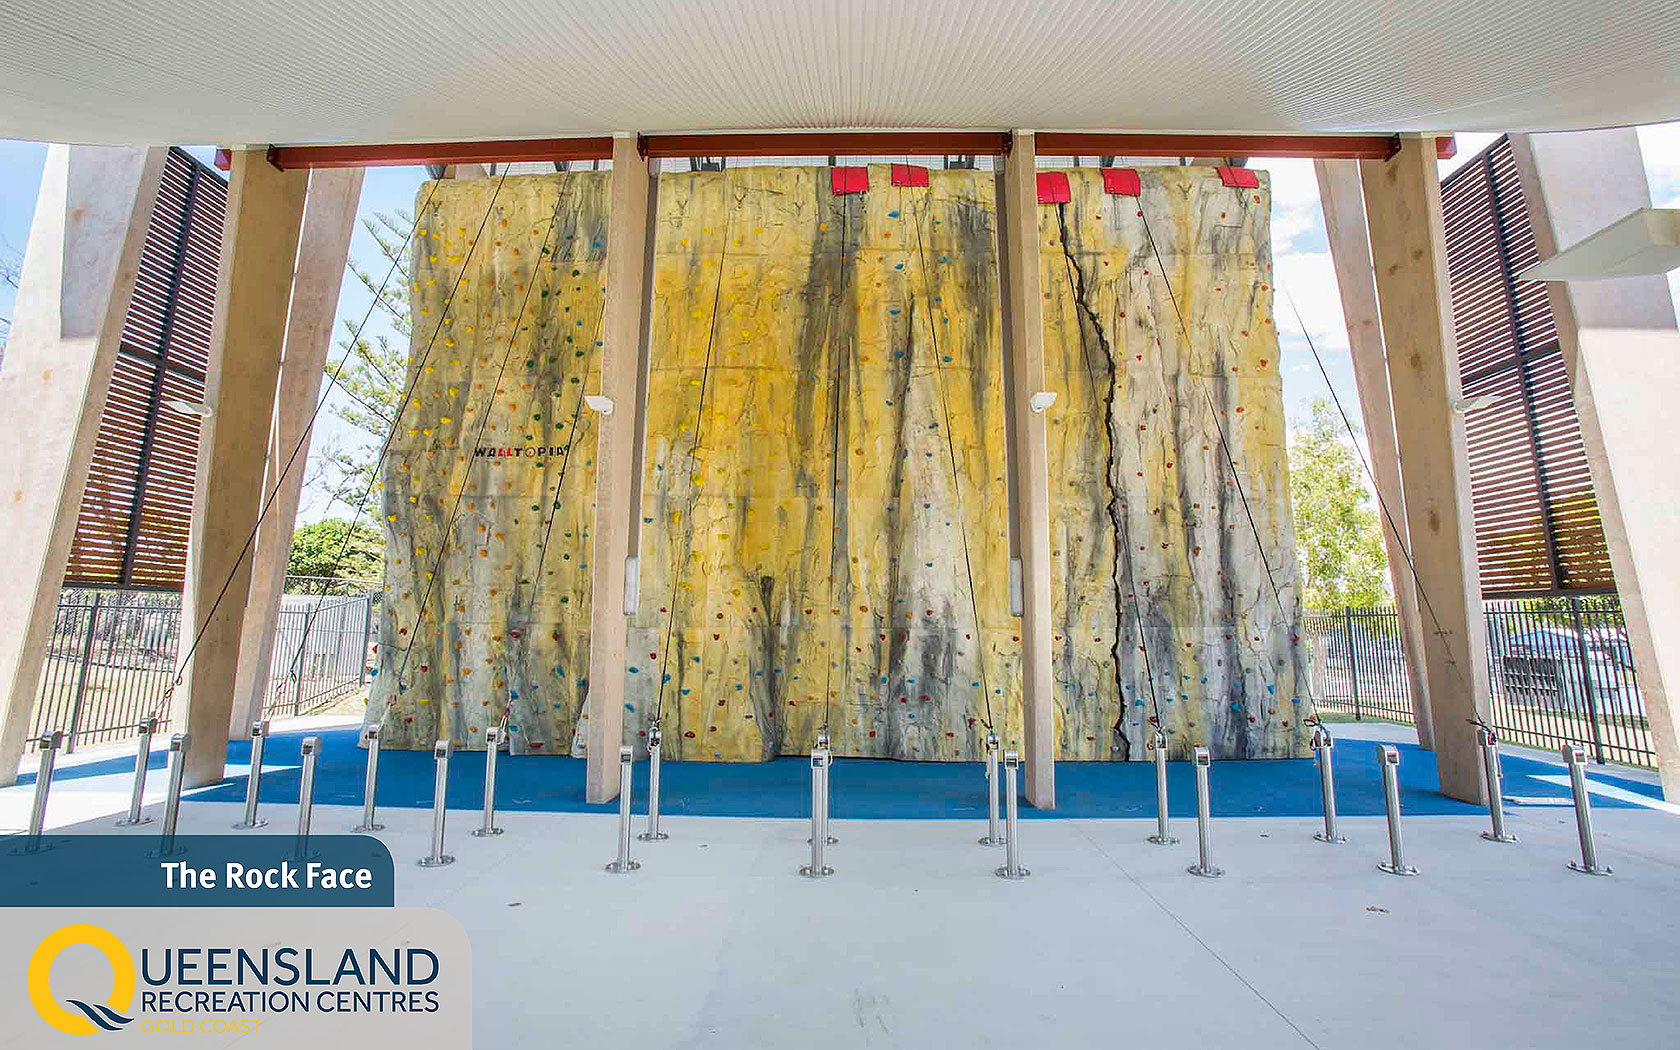 Ten meter high covered rock climbing wall with colourful climbing paths at the Gold Coast Recreation Centre